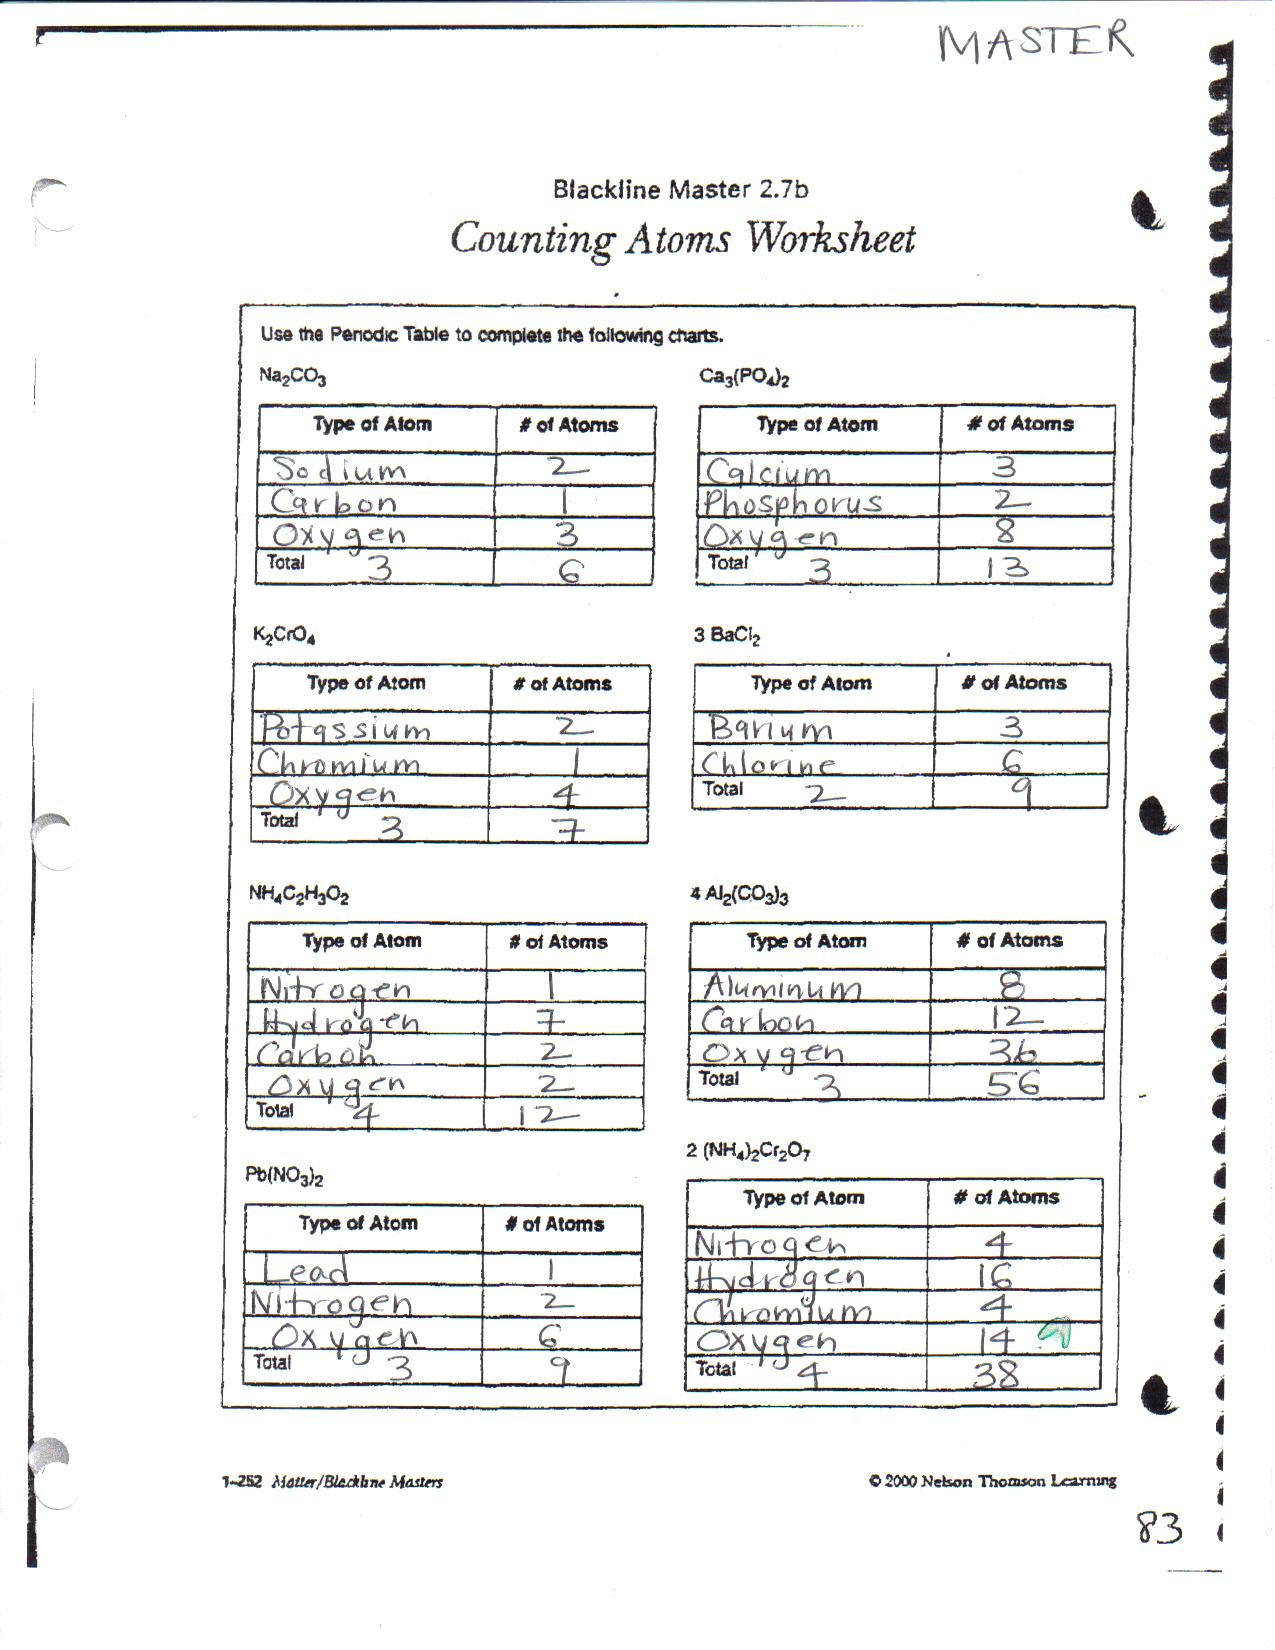 Counting Atoms Practice Worksheet Answers